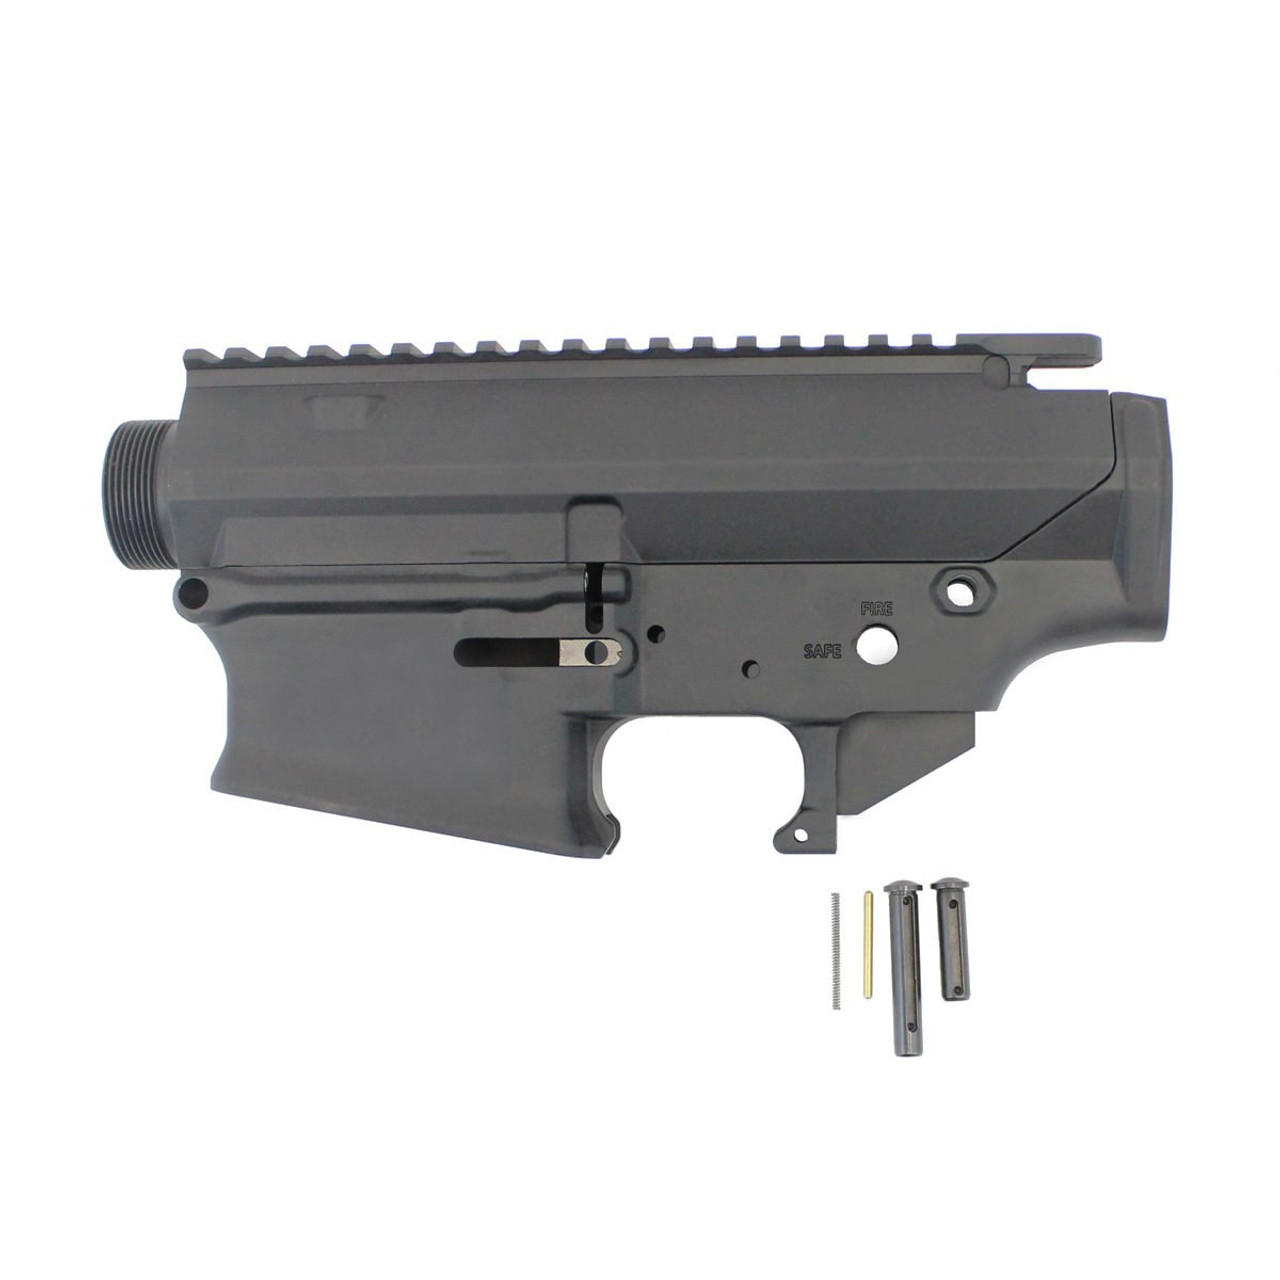 Stag 10 Stripped Upper / Lower Combo (Non-Restricted)